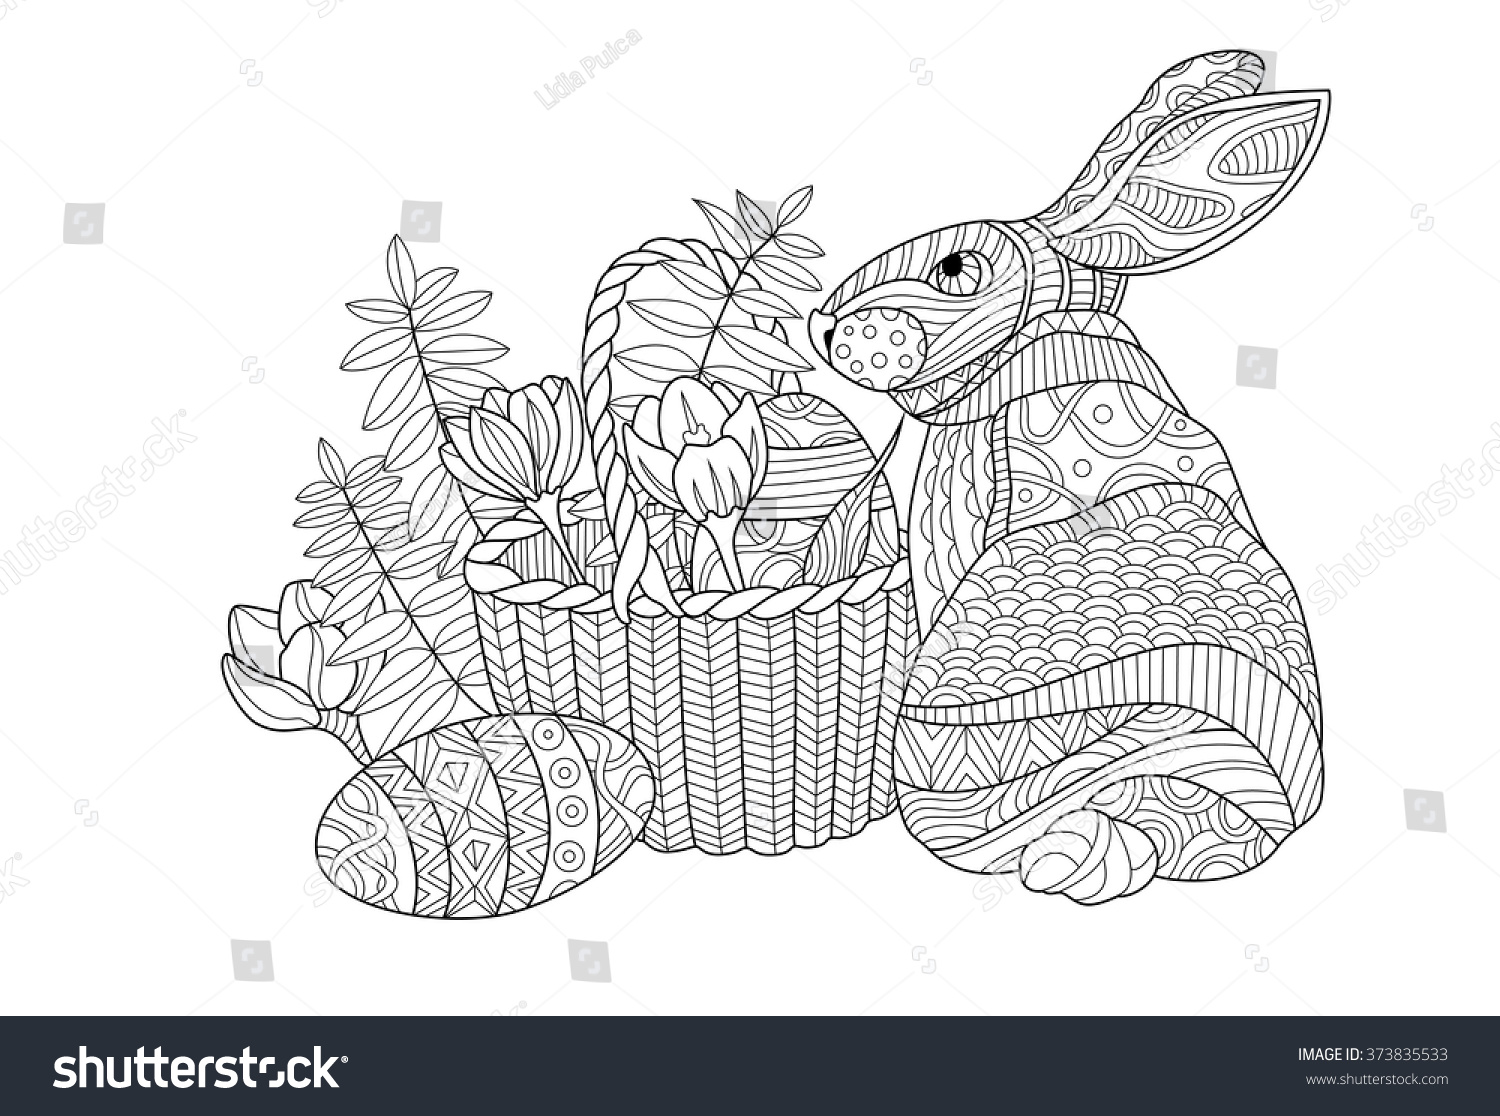 Easter Bunny Coloring Page Illustration Stock Vector 373835533 ...